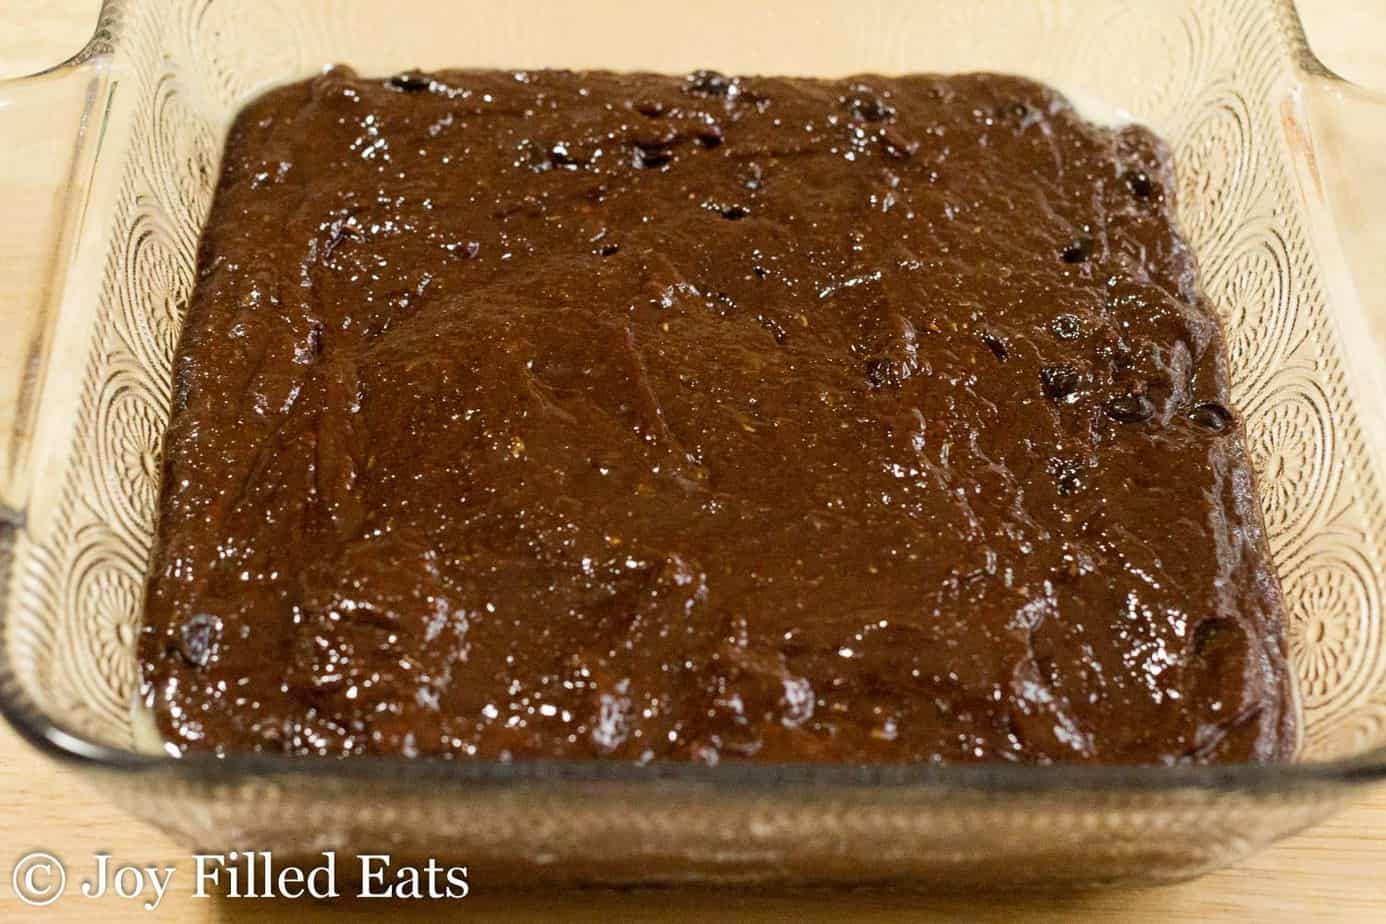 chocolate brownie batter spread into baking dish